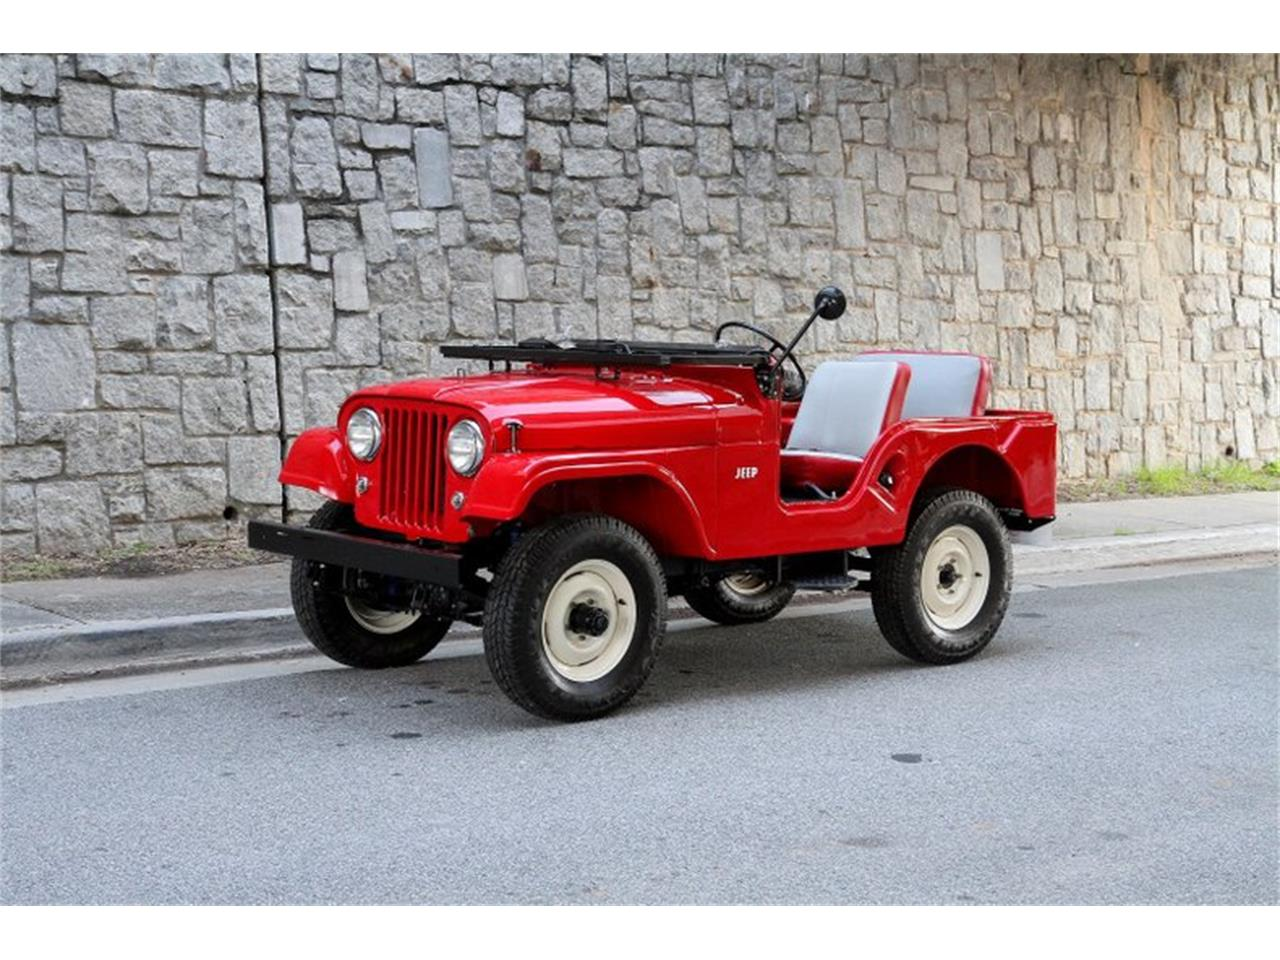 Large Picture of '59 Jeep - PG9O